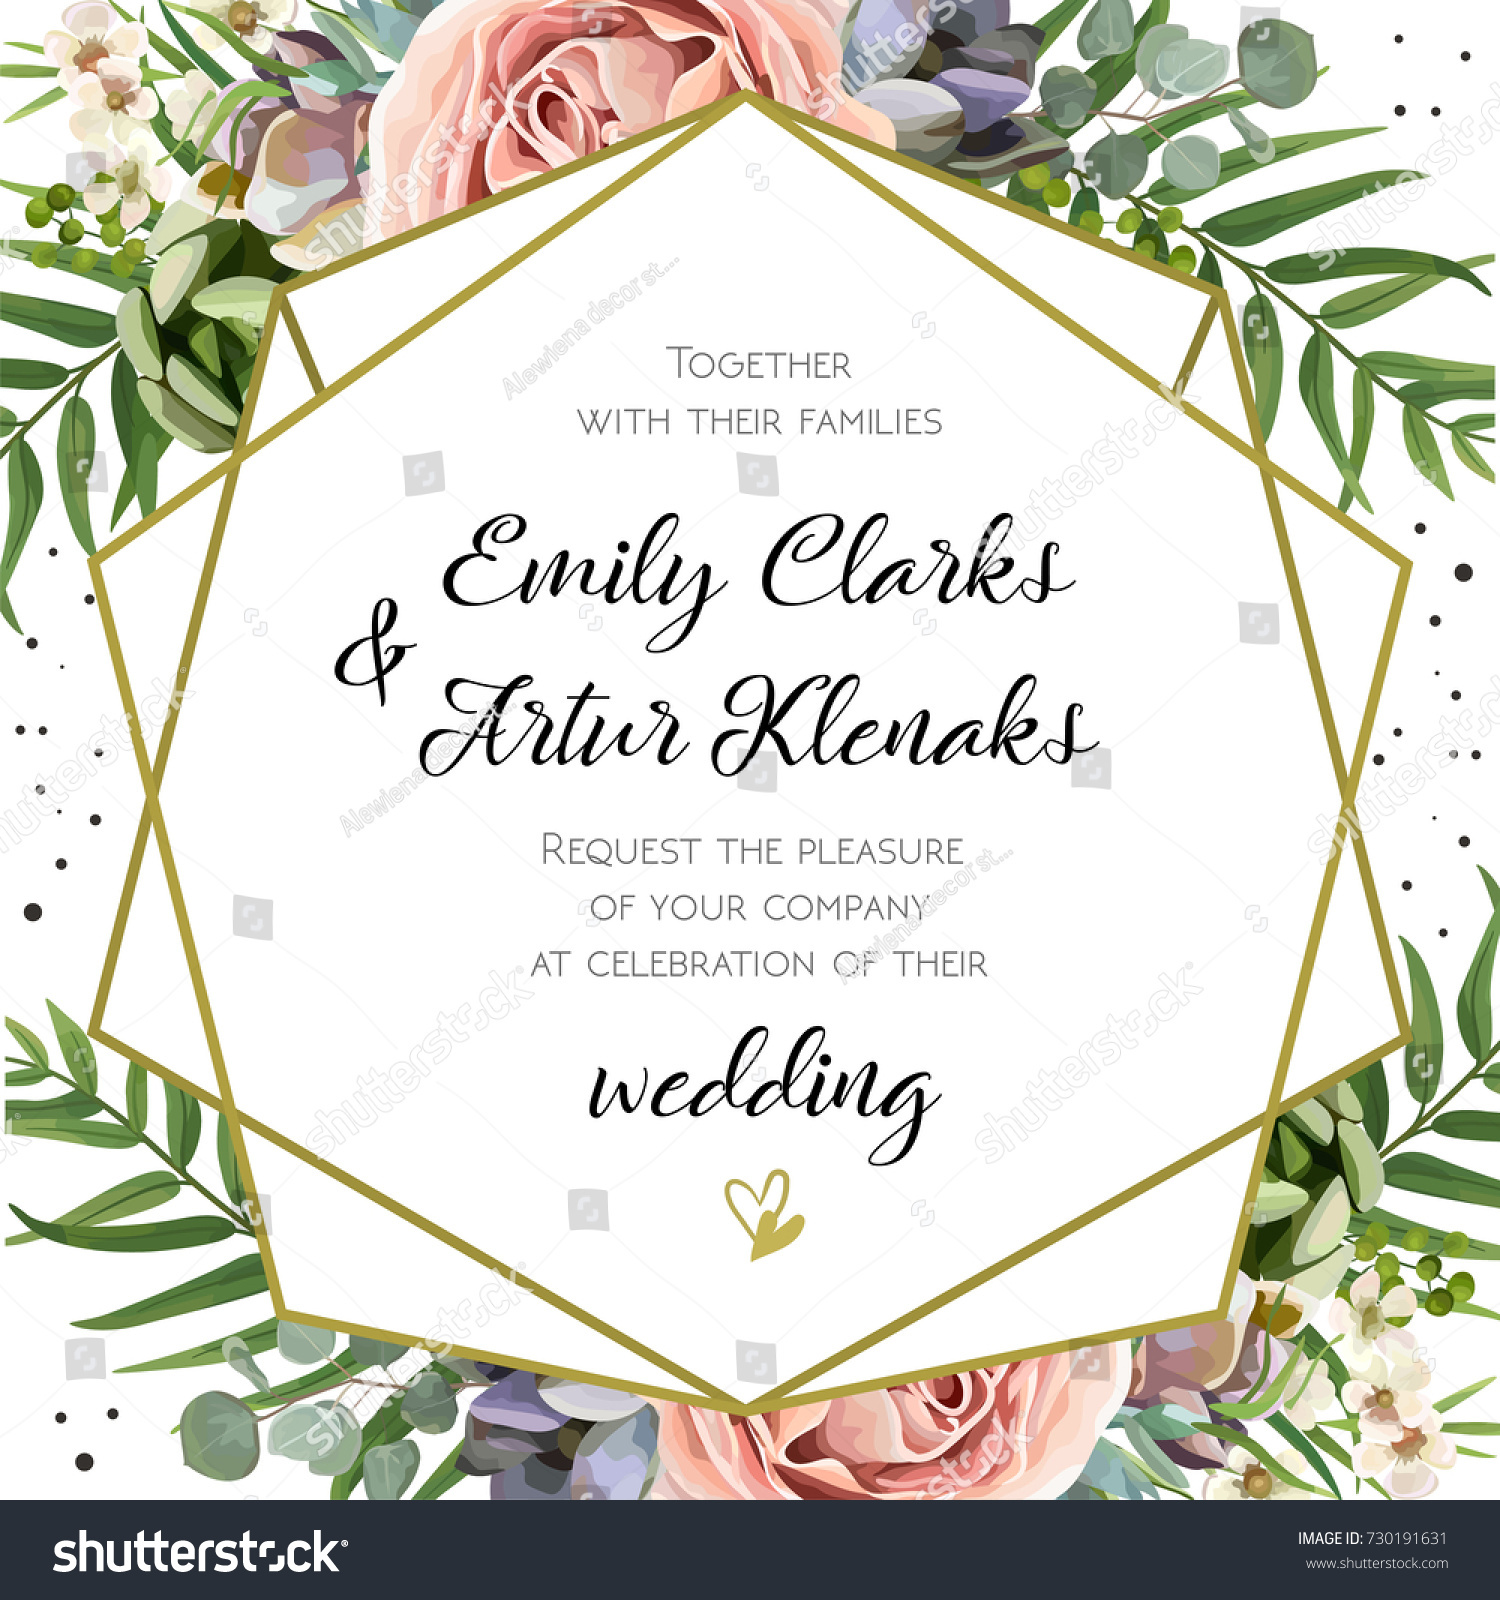 Wedding Invitation, floral invite card Design: Peach lavender pink garden Rose, succulent, wax, eucalyptus, green palm leaves, forest fern greenery geometric golden frame print. Vector cute copy space #730191631